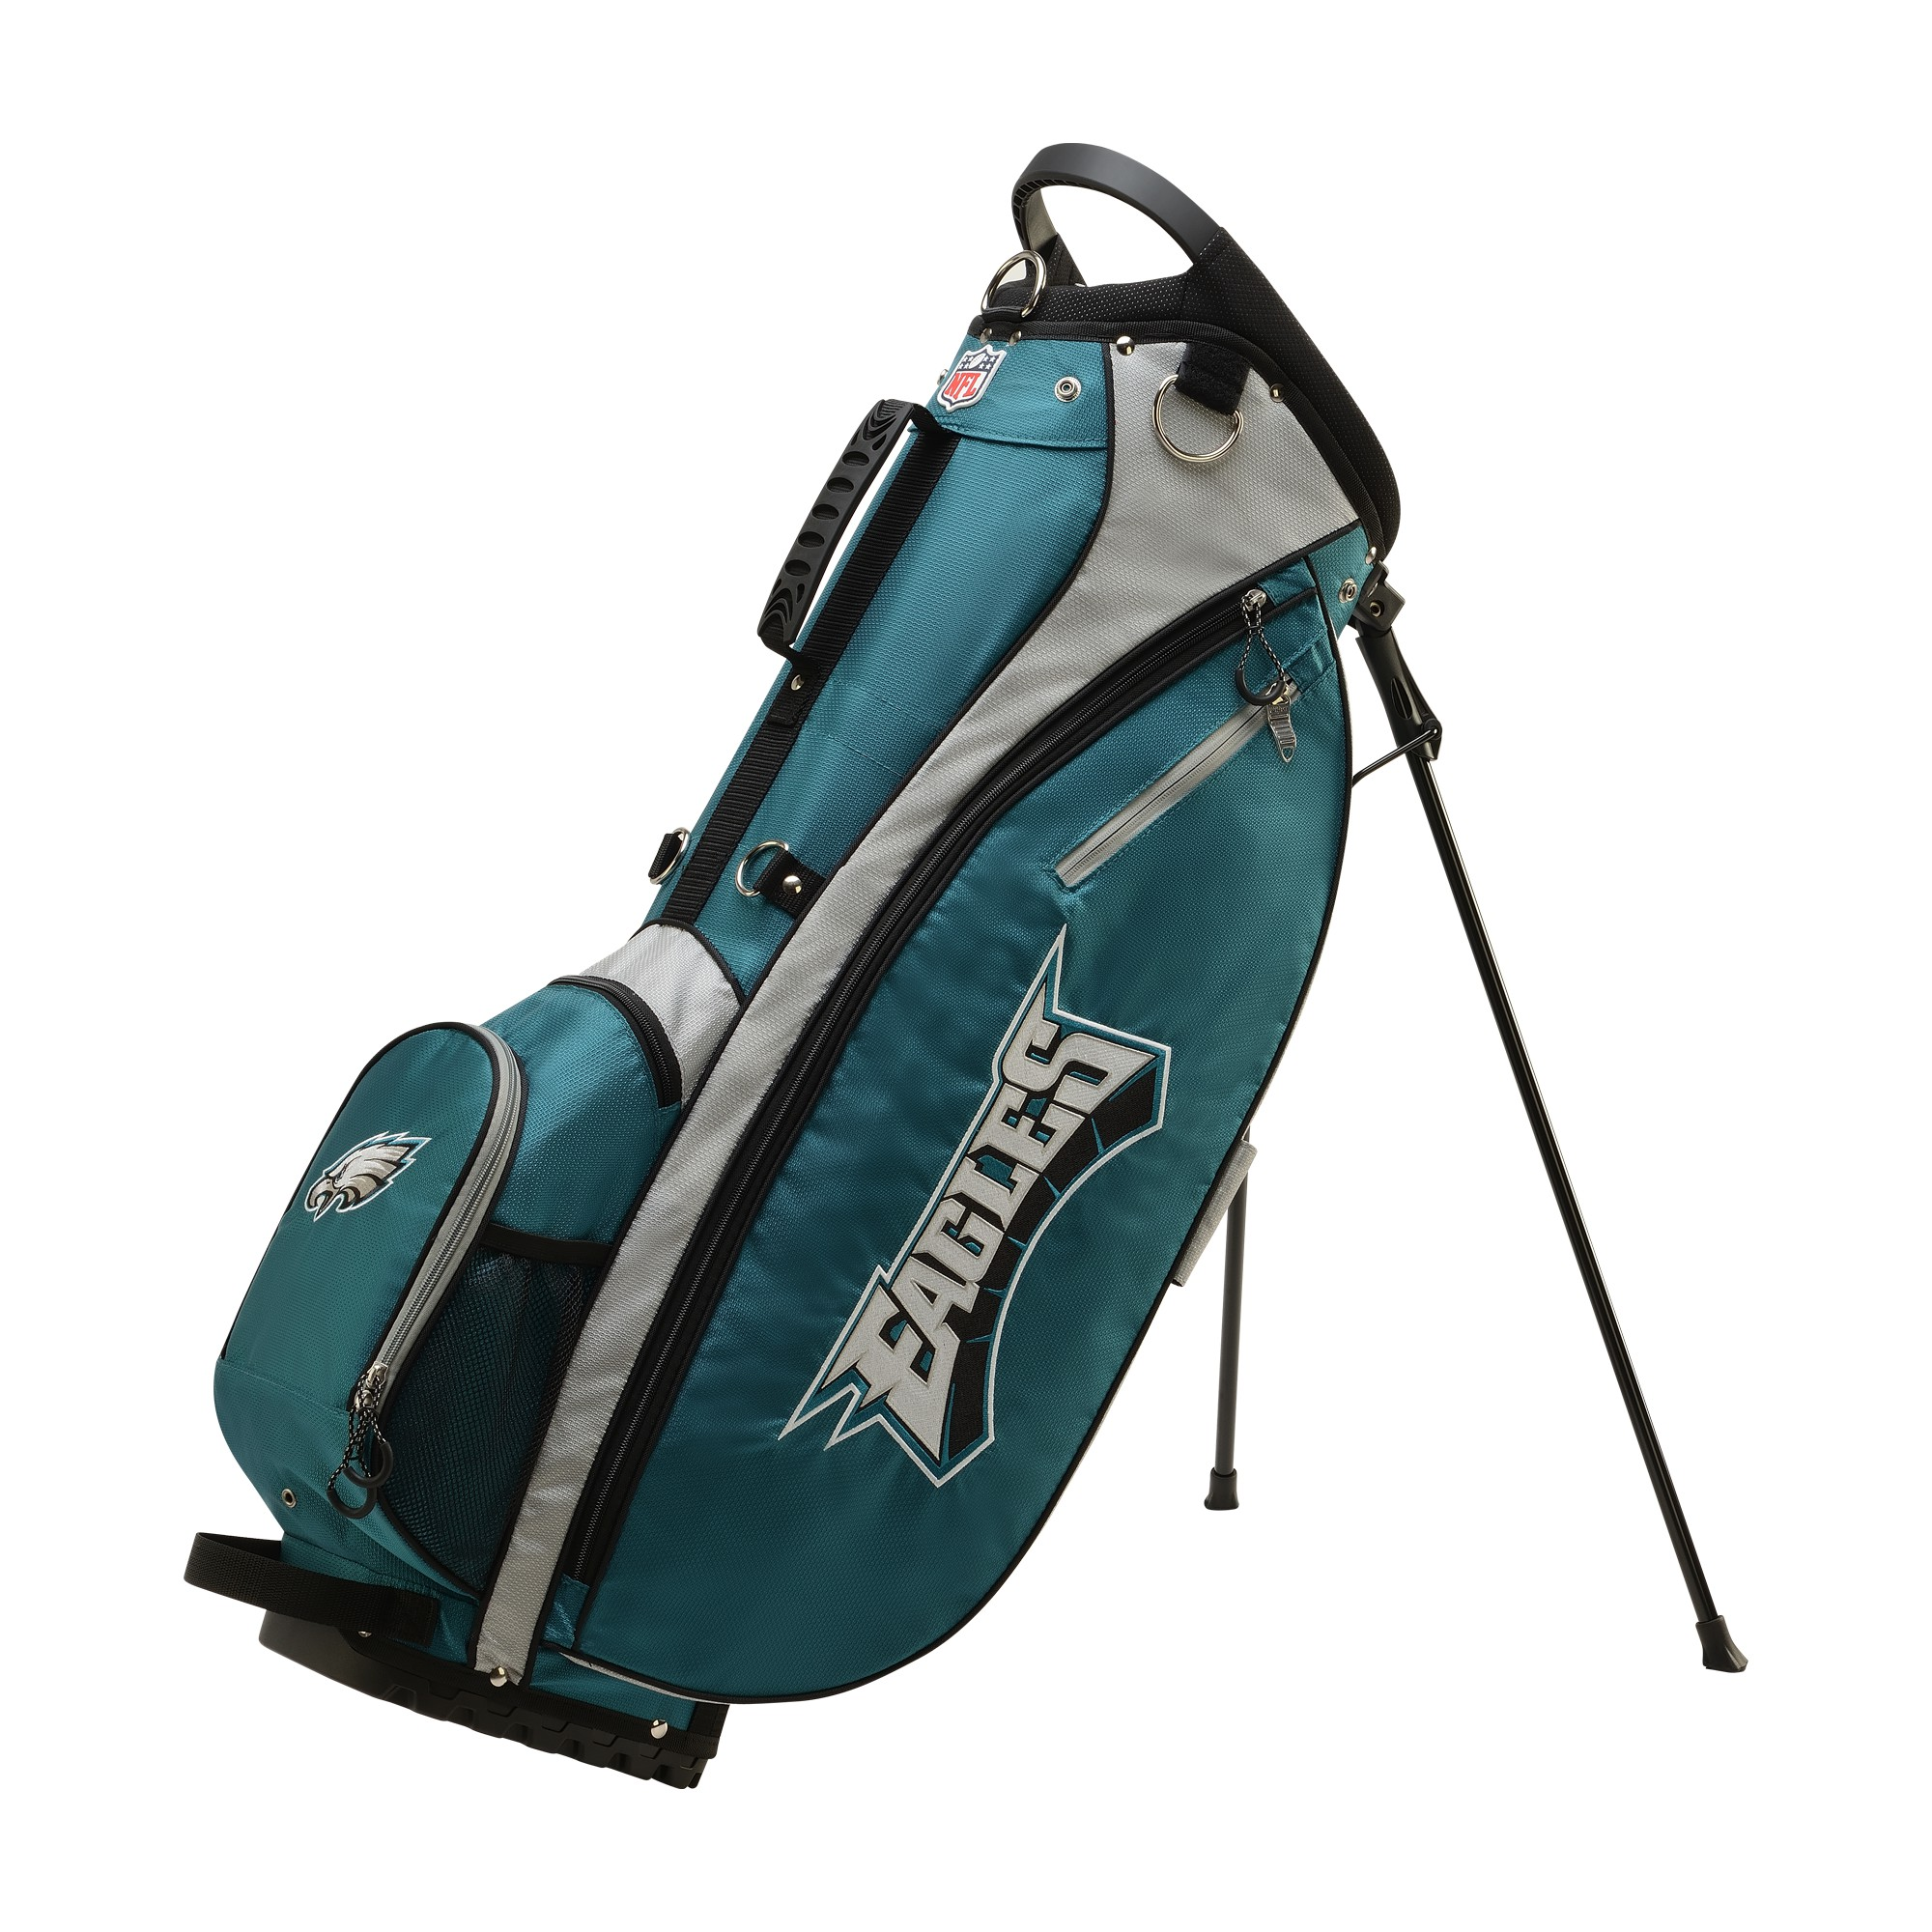 Philadelphia Eagles NFL Golf Gear - NFL golf carry bag